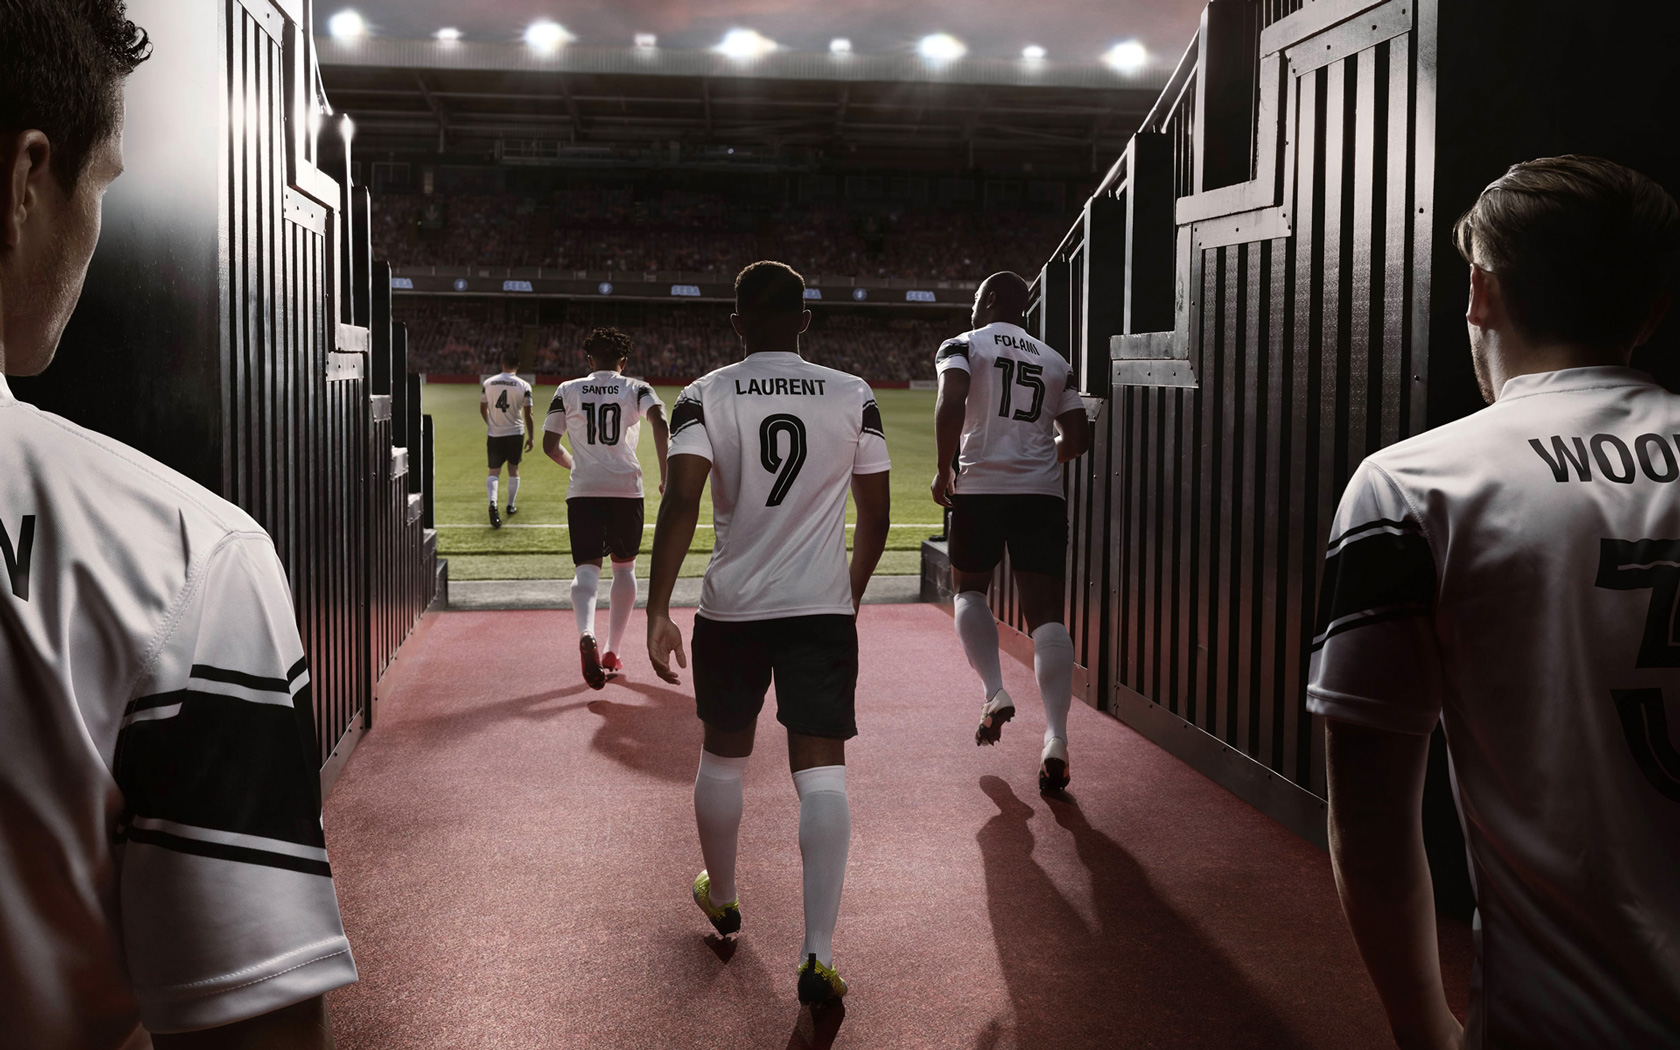 Free Football Manager 2019 Wallpaper in 1680x1050